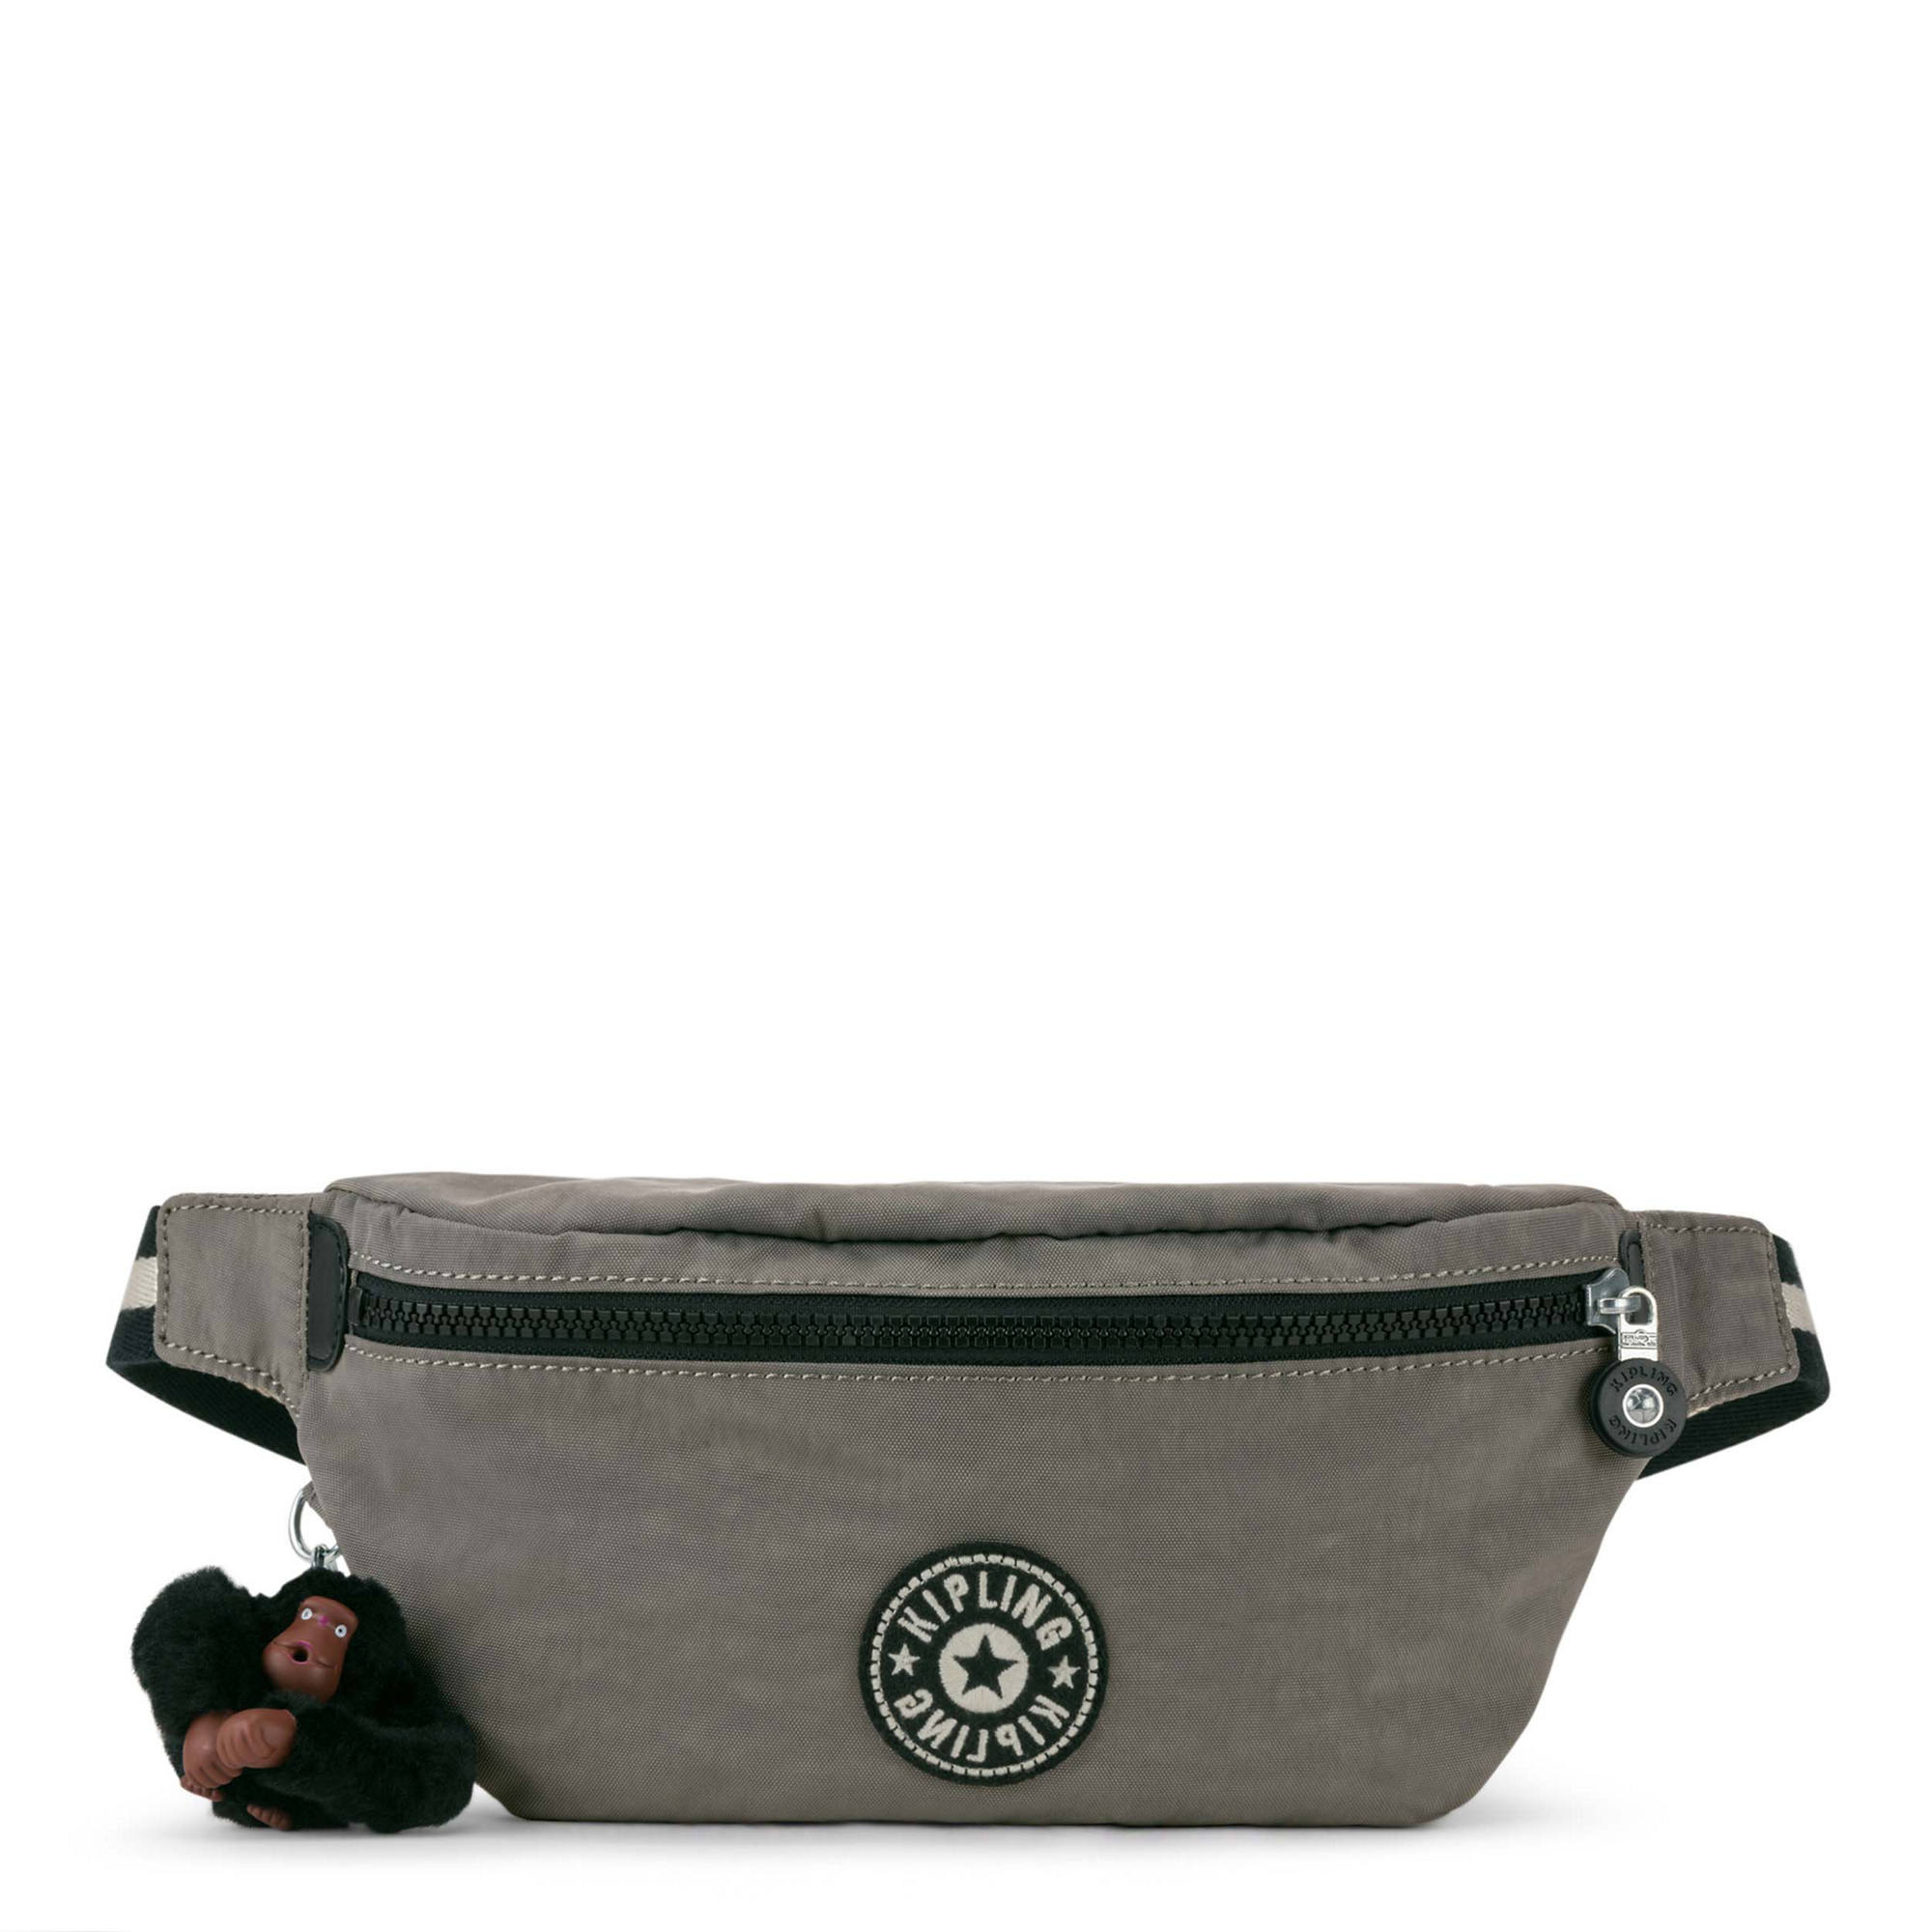 f2e50d3b589 Breah Fanny Pack,Dusty Grey,large